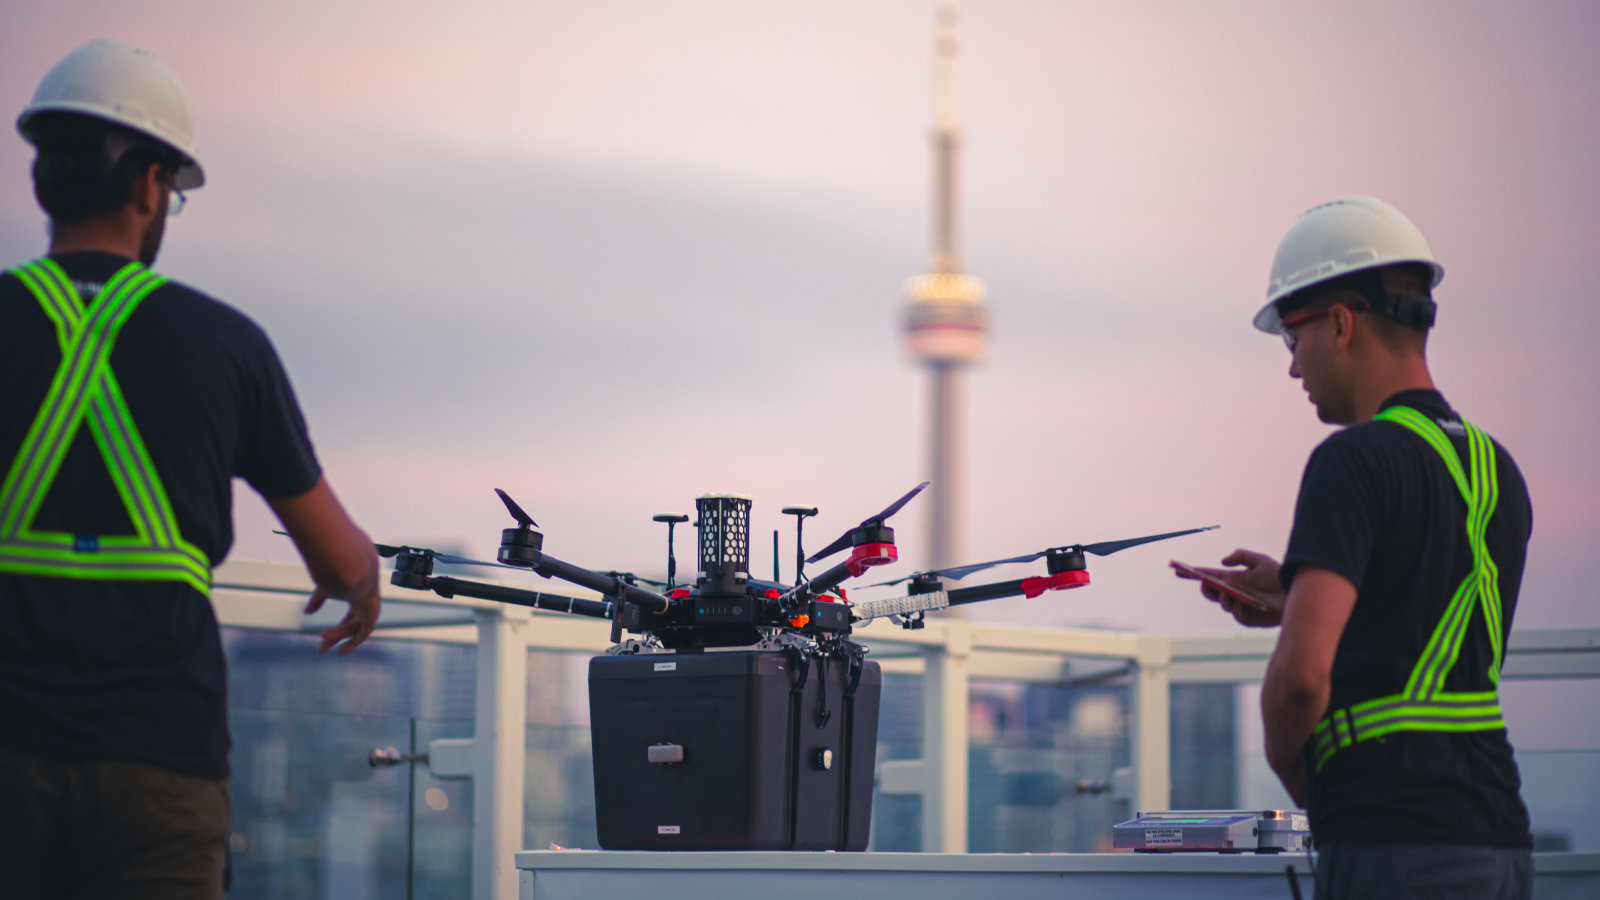 Unither Drone Delivery